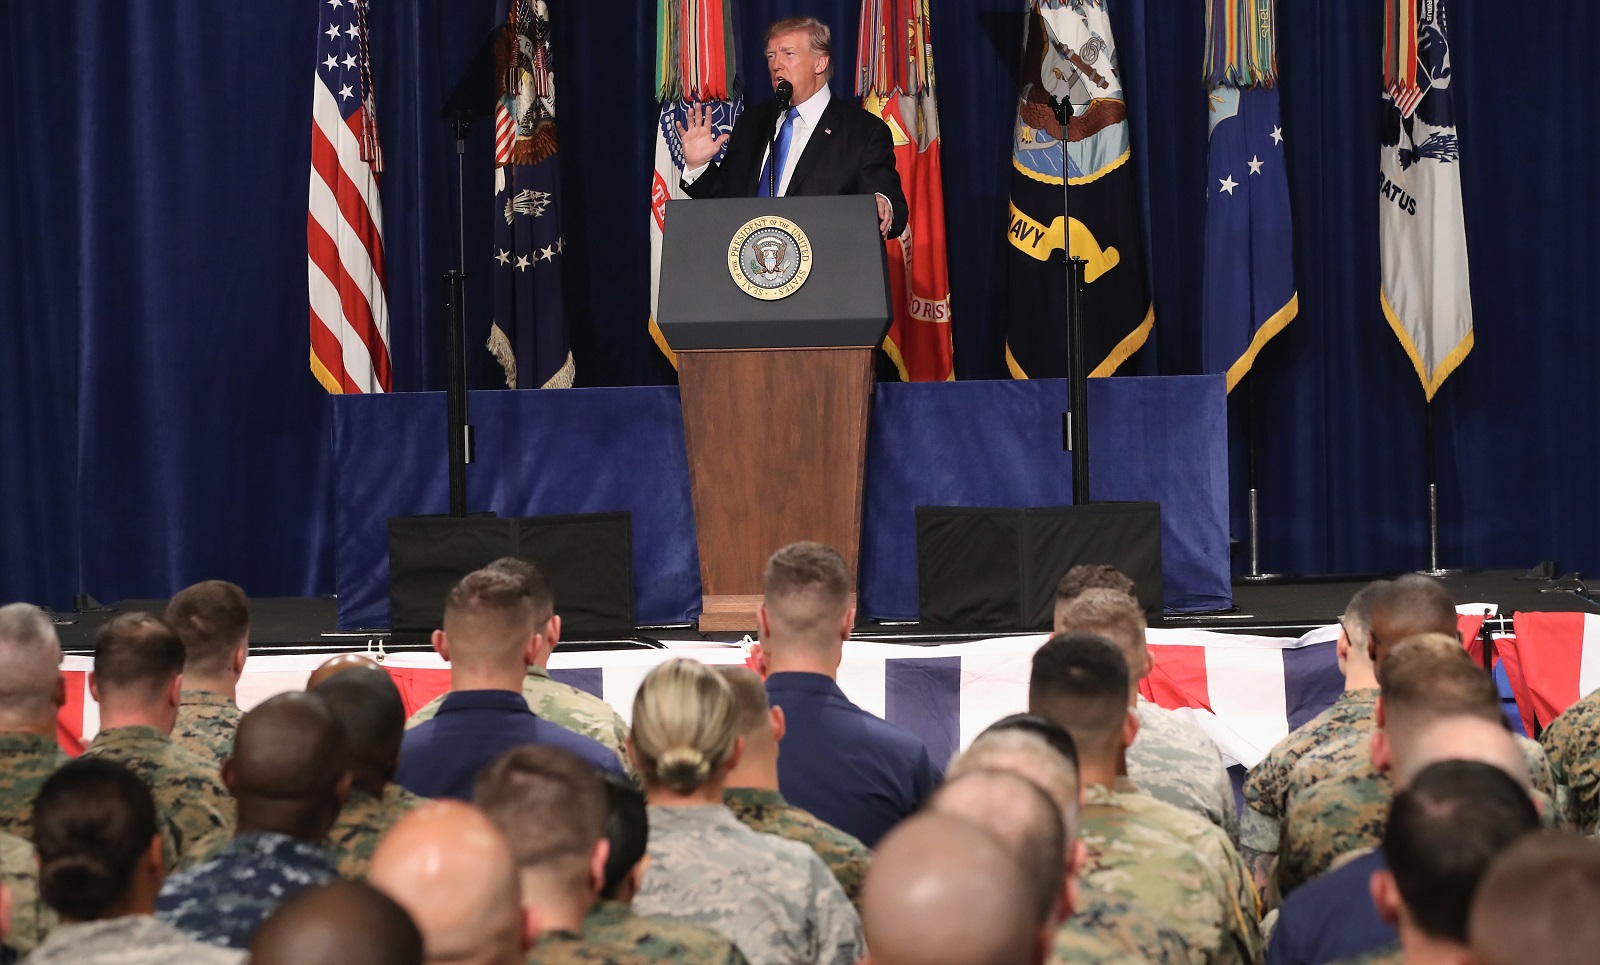 President Trump speaks on America's military involvement in Afghanistan at the Fort Myer base in Arlington, Virginia. (Photo: Mark Wilson/Getty Images)